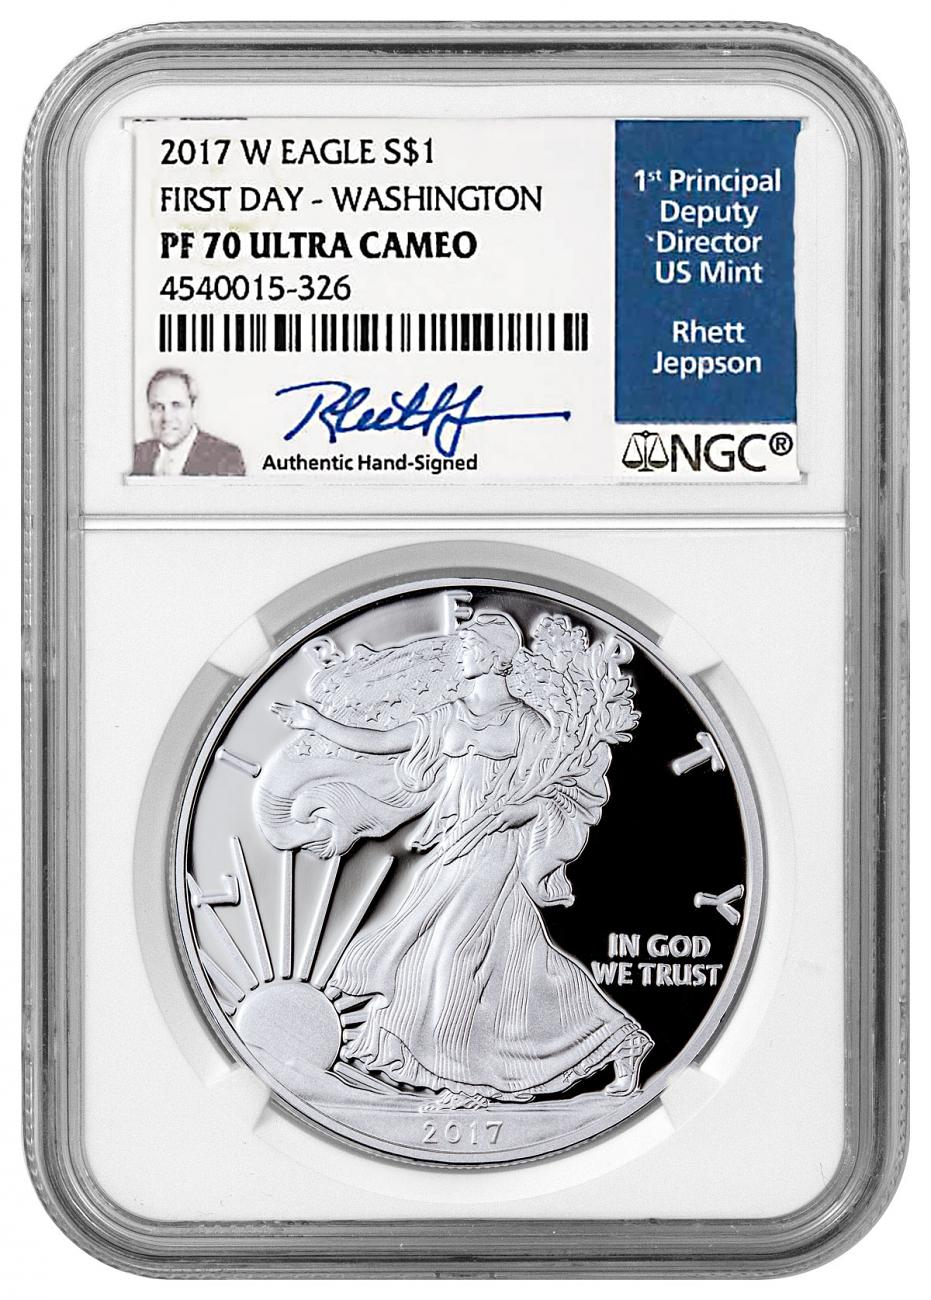 2017-W Proof American Silver Eagle NGC PF70 UC FDI Jeppson Signed Washington D.C. Label